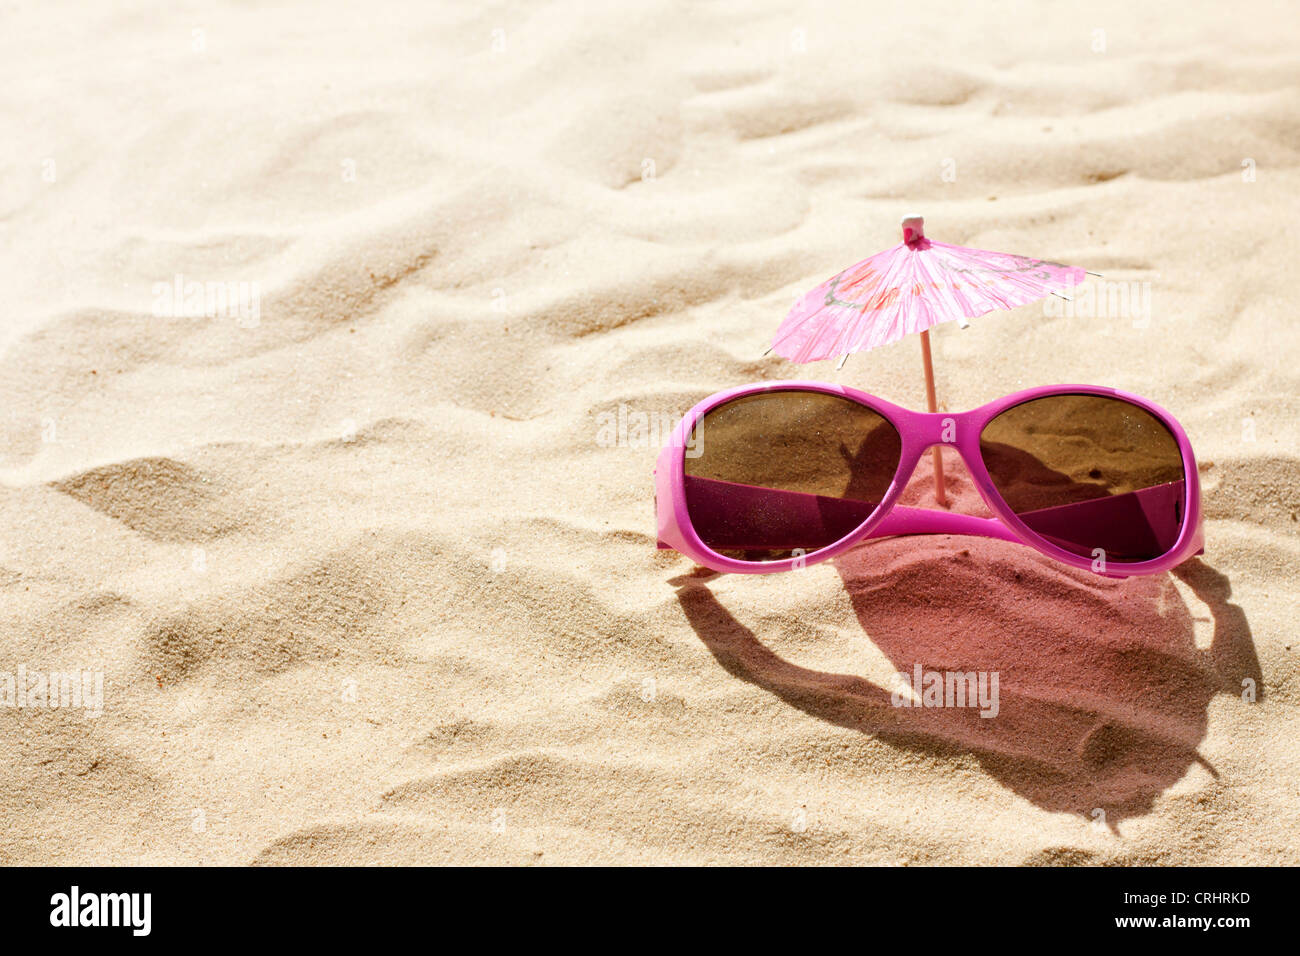 sunglasses on beach in sand holiday hot day concept - Stock Image